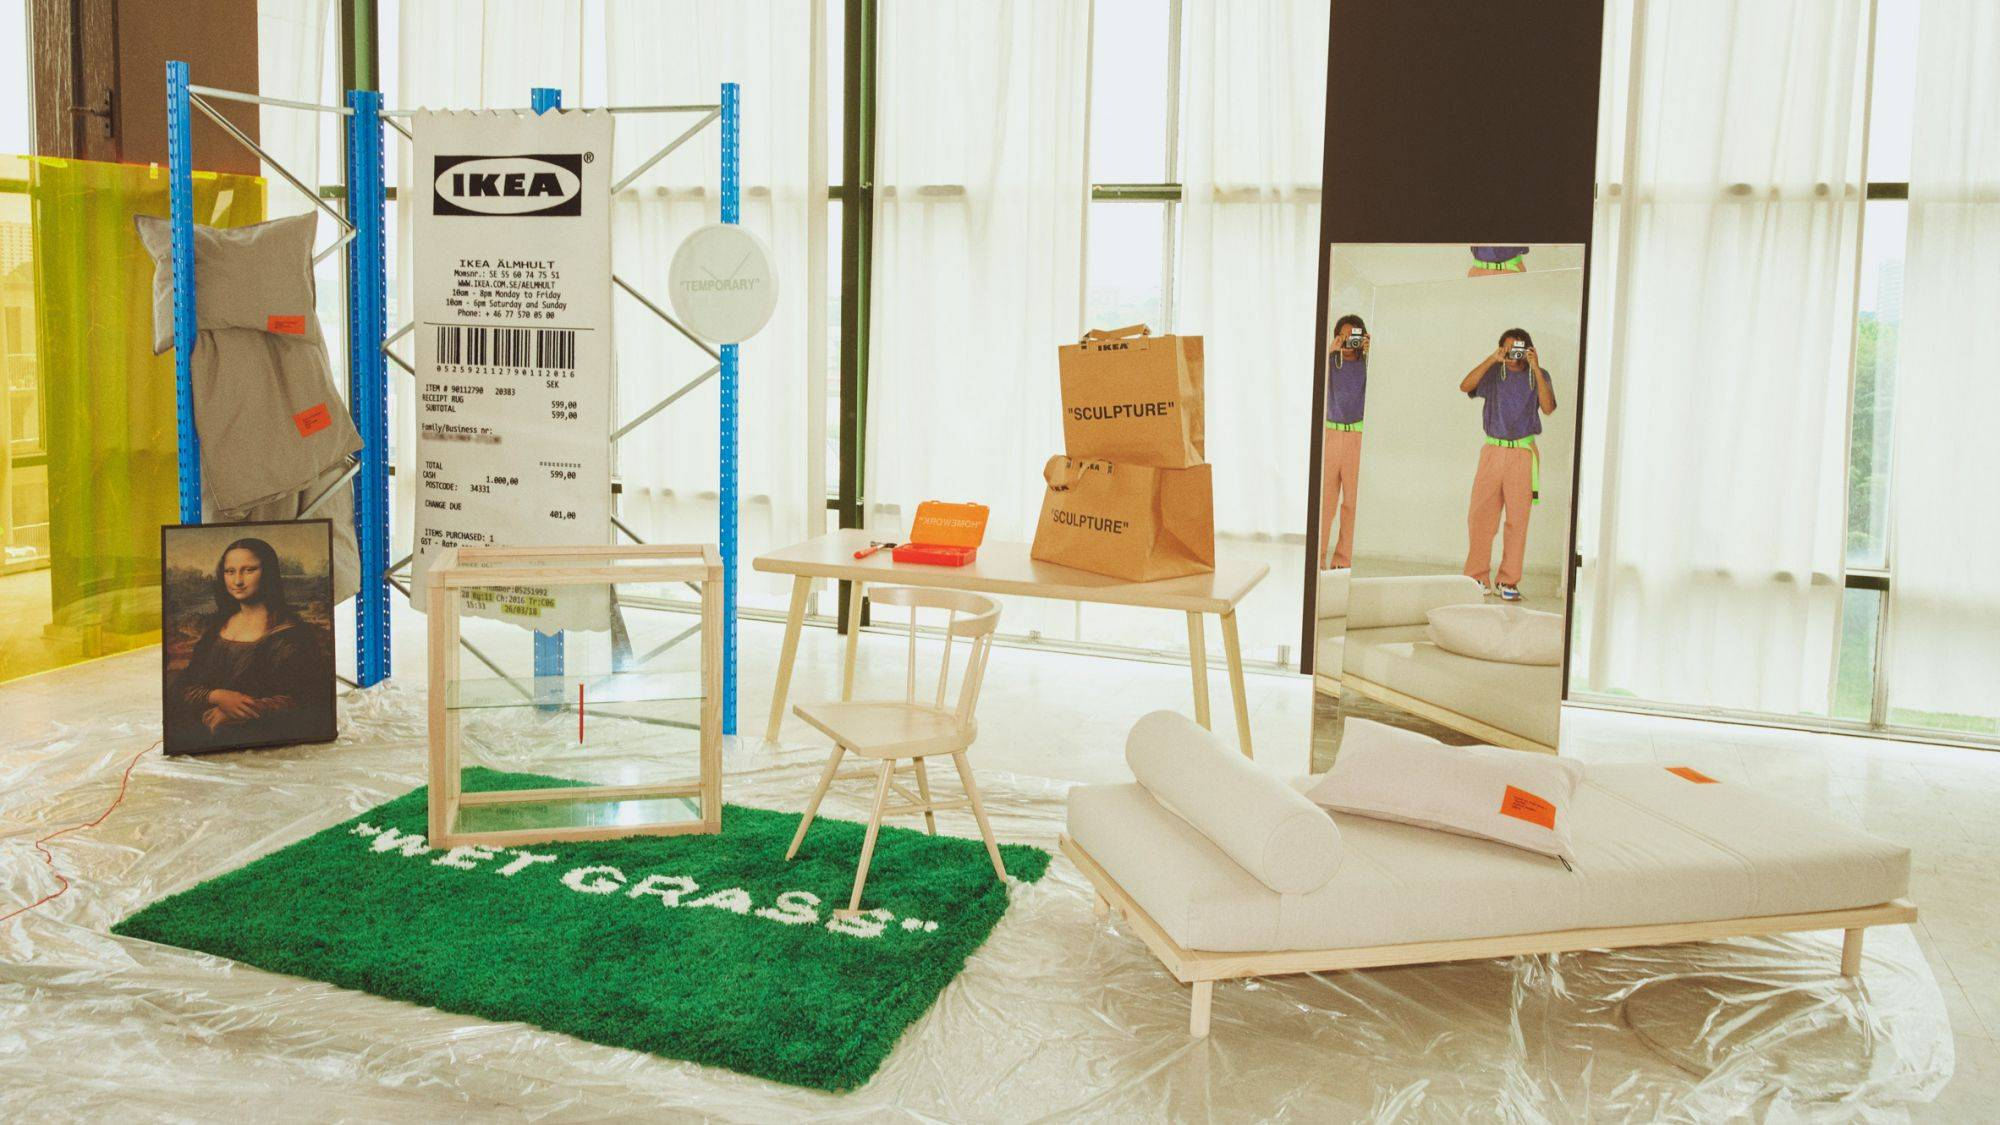 virgil abloh markerad collection ikea launches usa dezeen 2364 col 24 cover 2000x1125